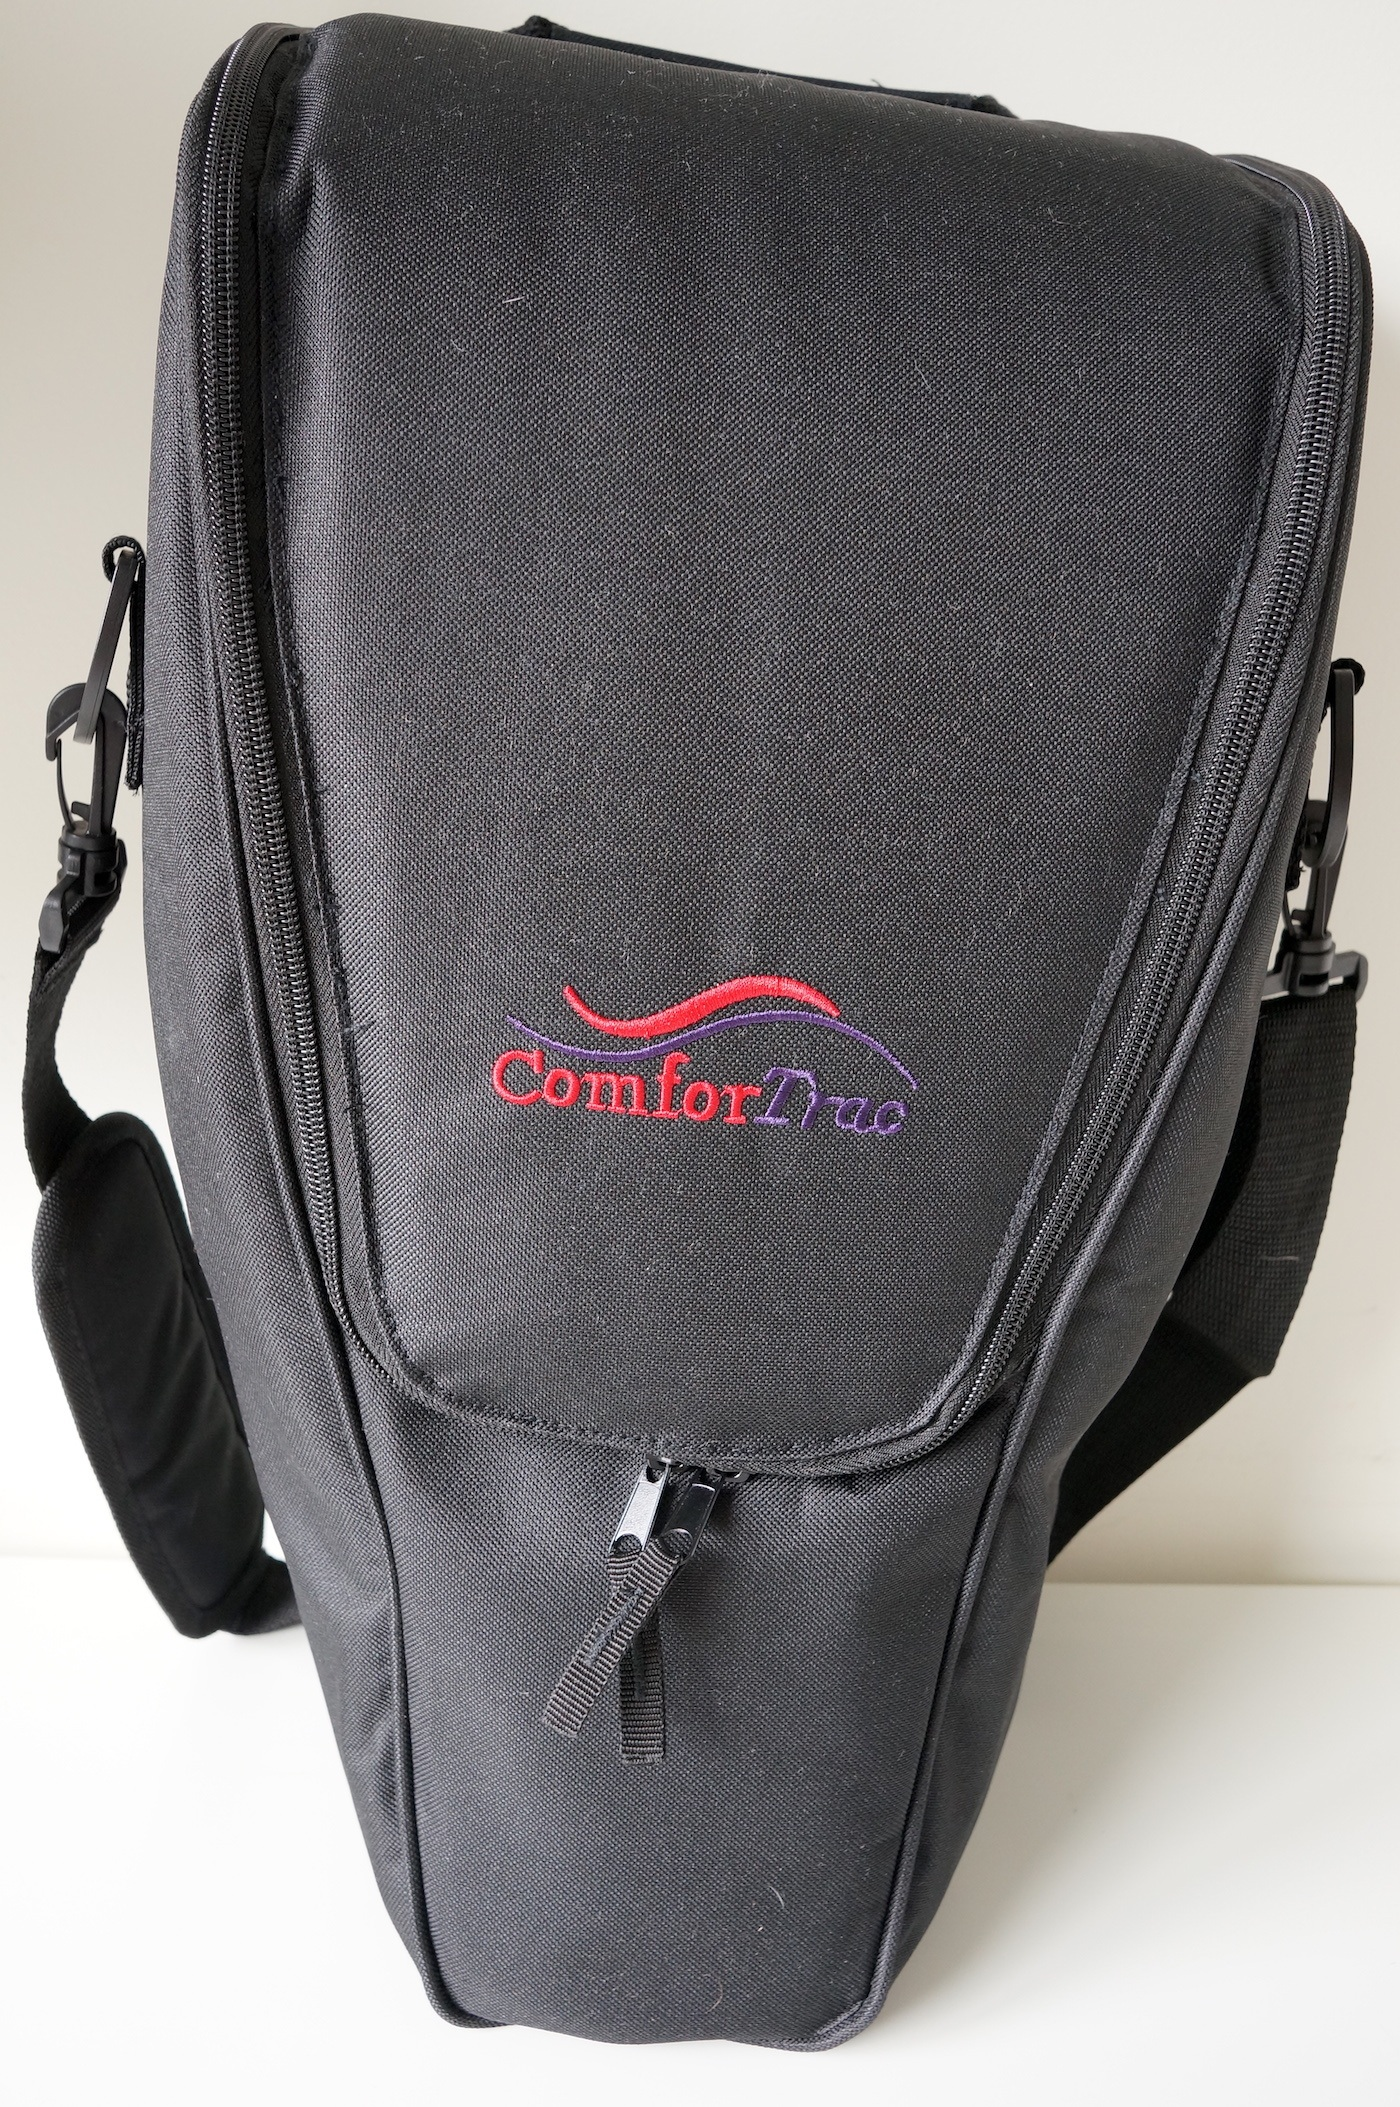 ComforTrac Cervical Traction Device carrying case